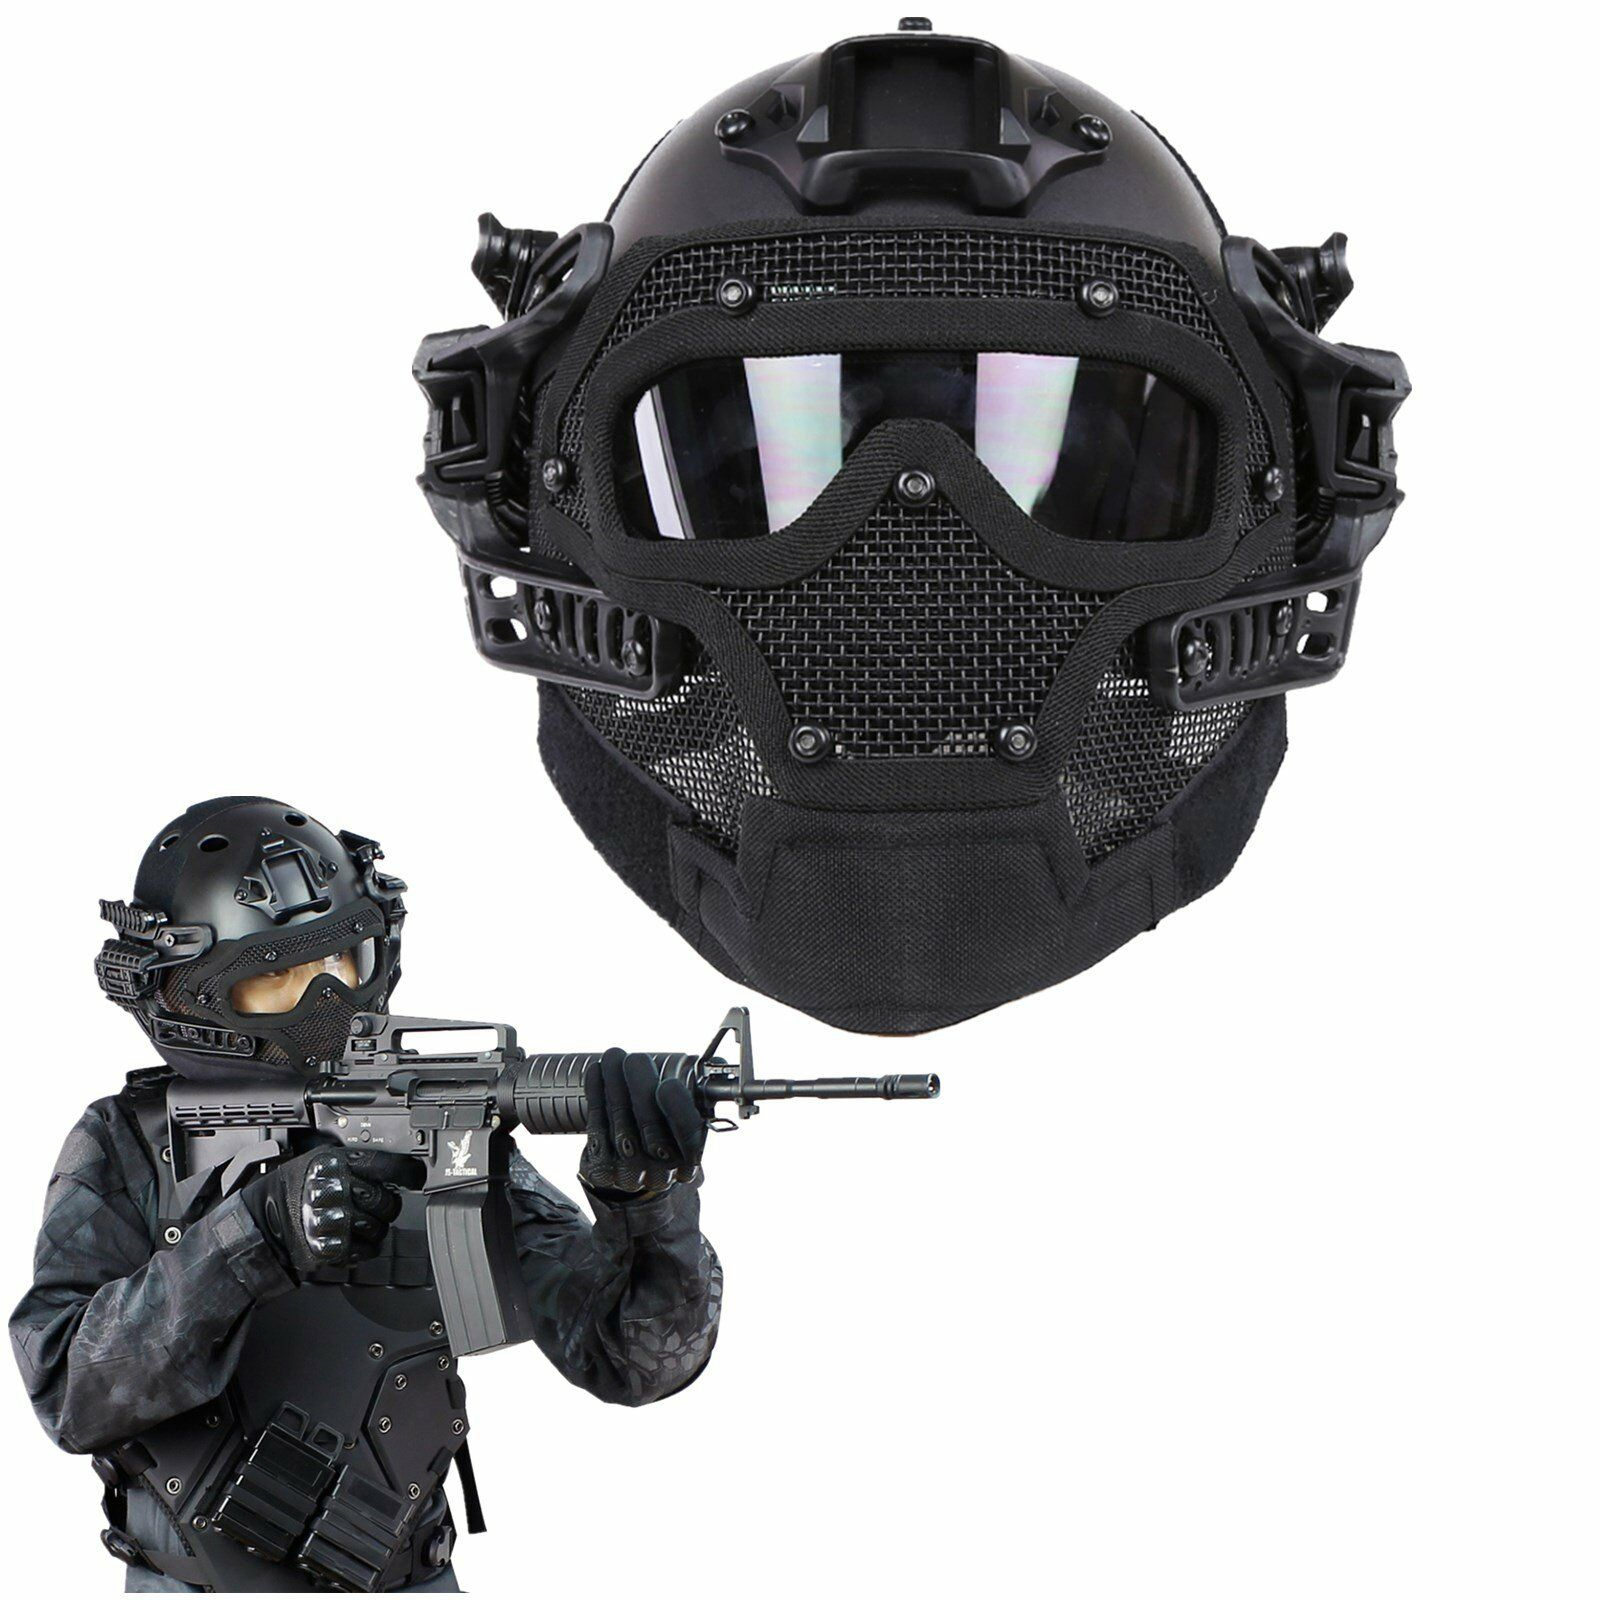 Military Tactical Airsoft Paintball Combat Helmet Face Mask Goggles G4 System